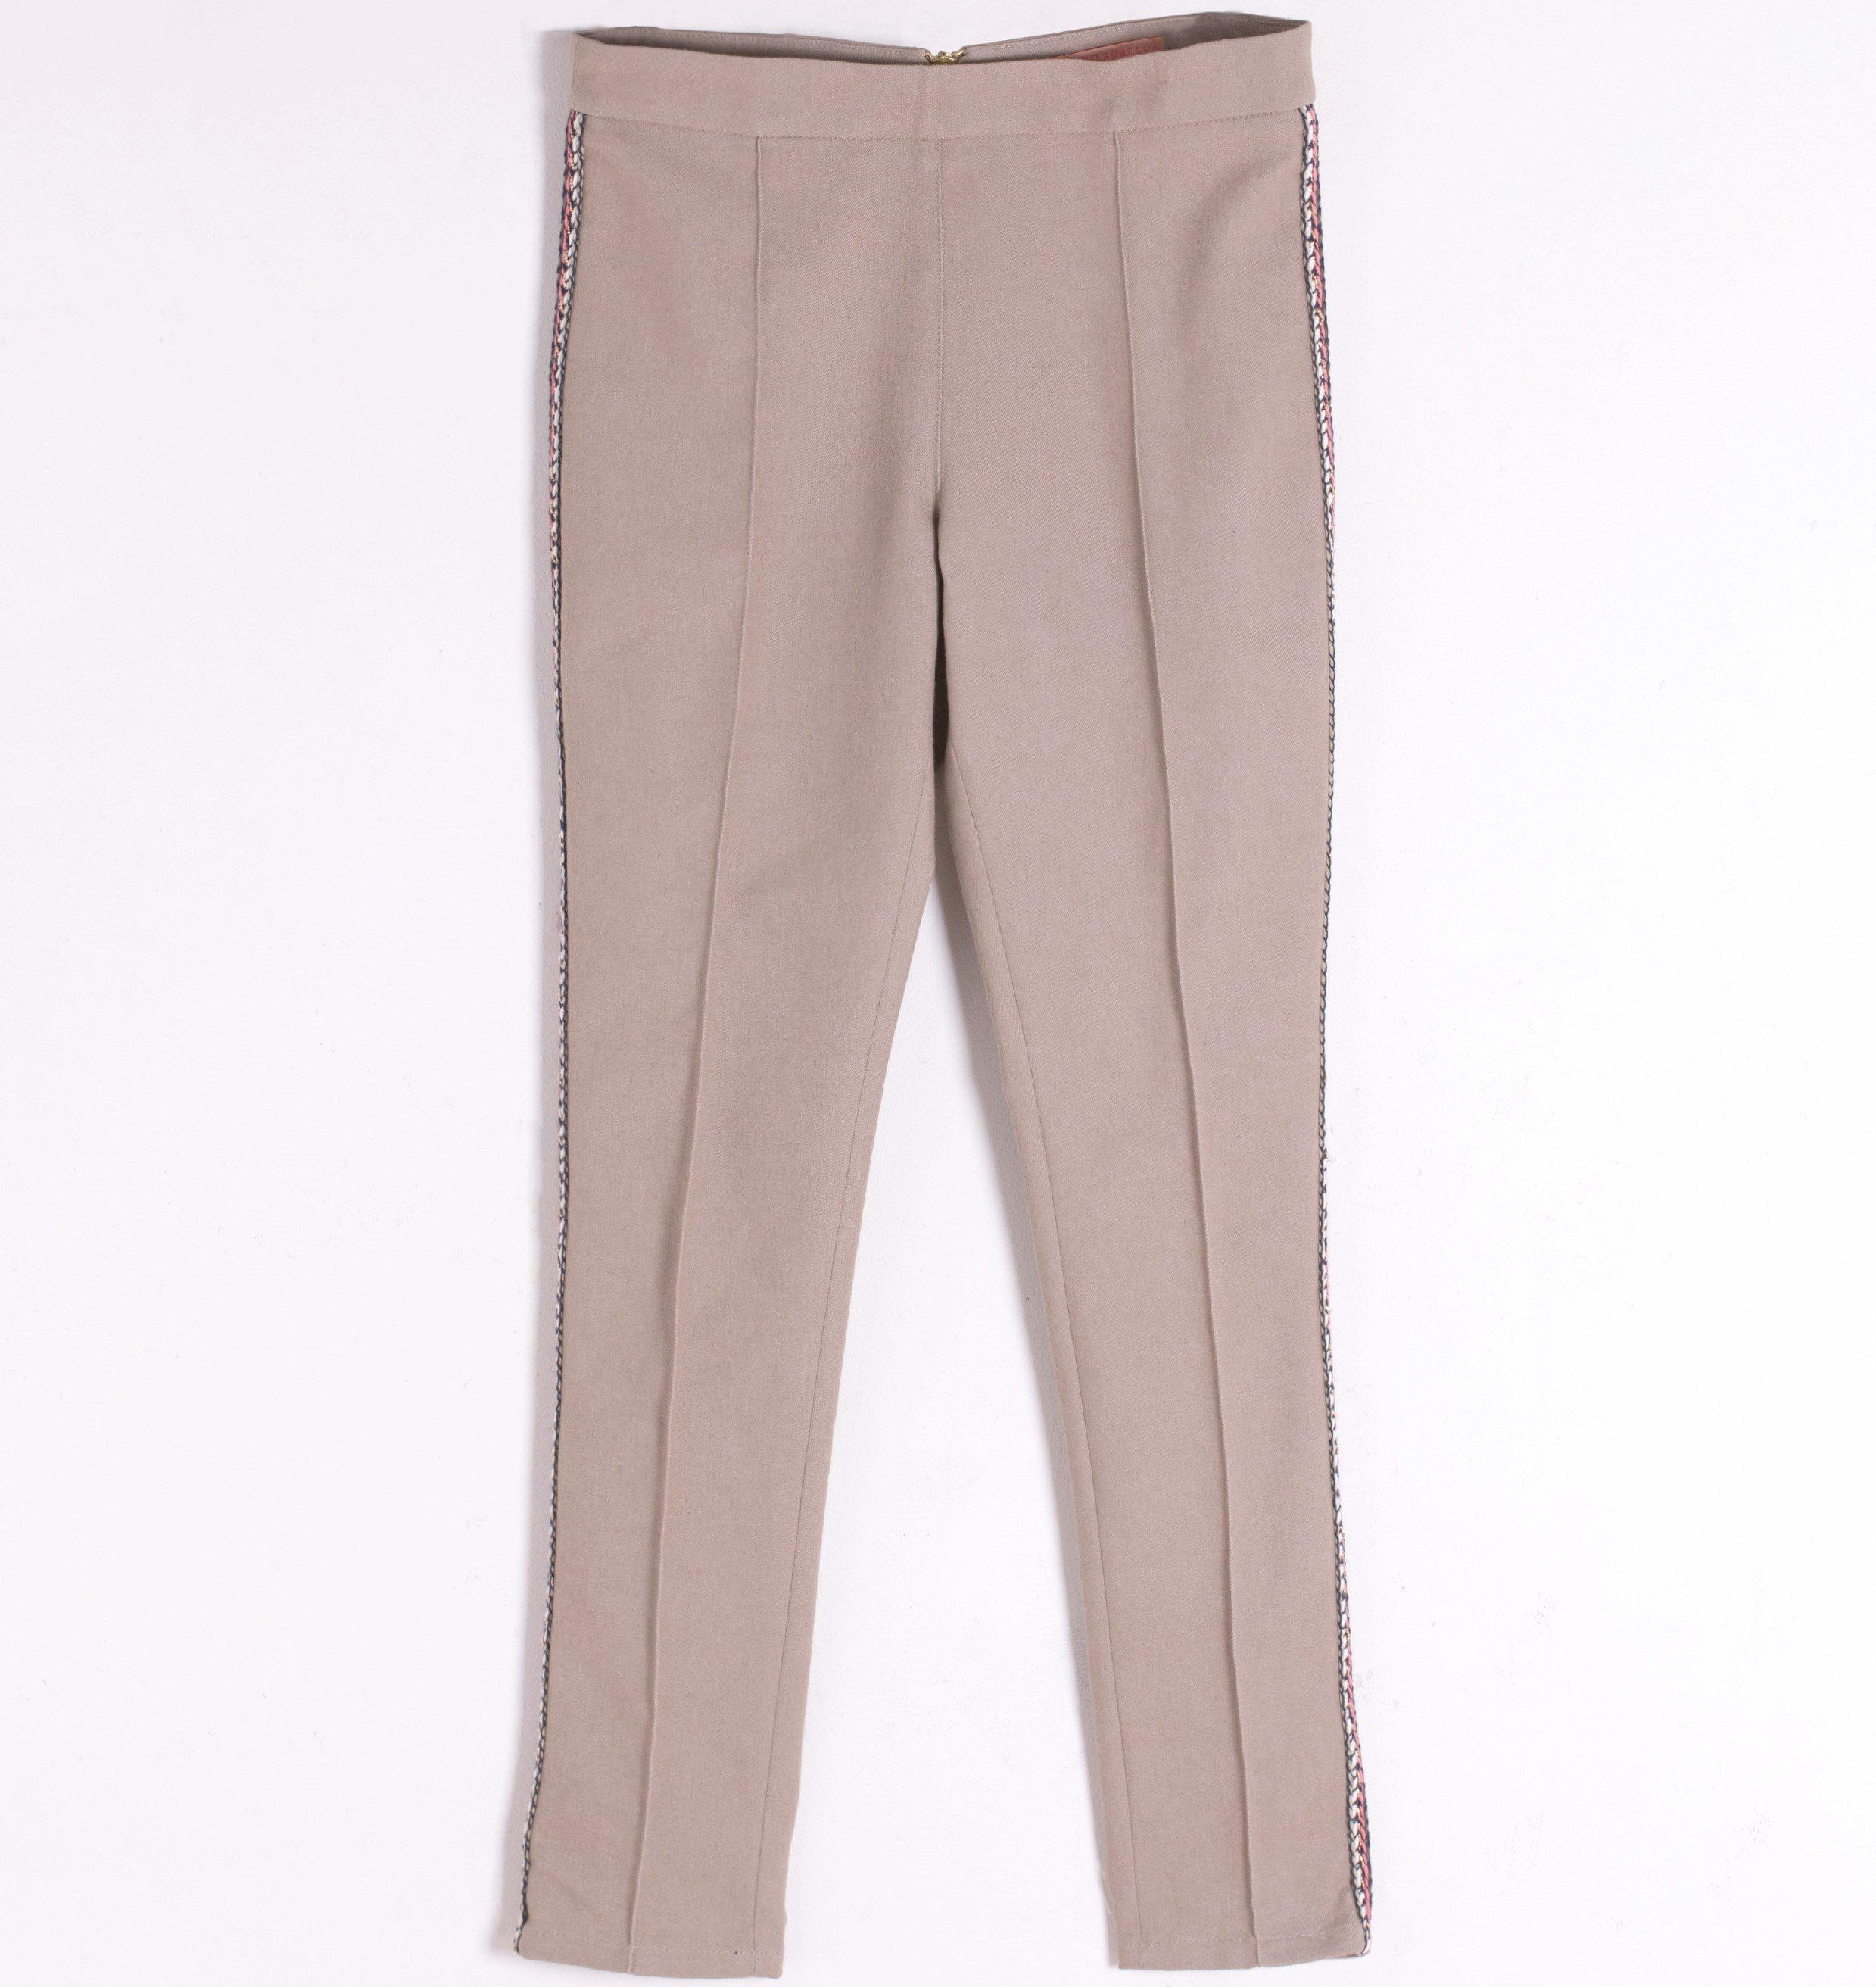 Keria Trousers VGTRKERIA